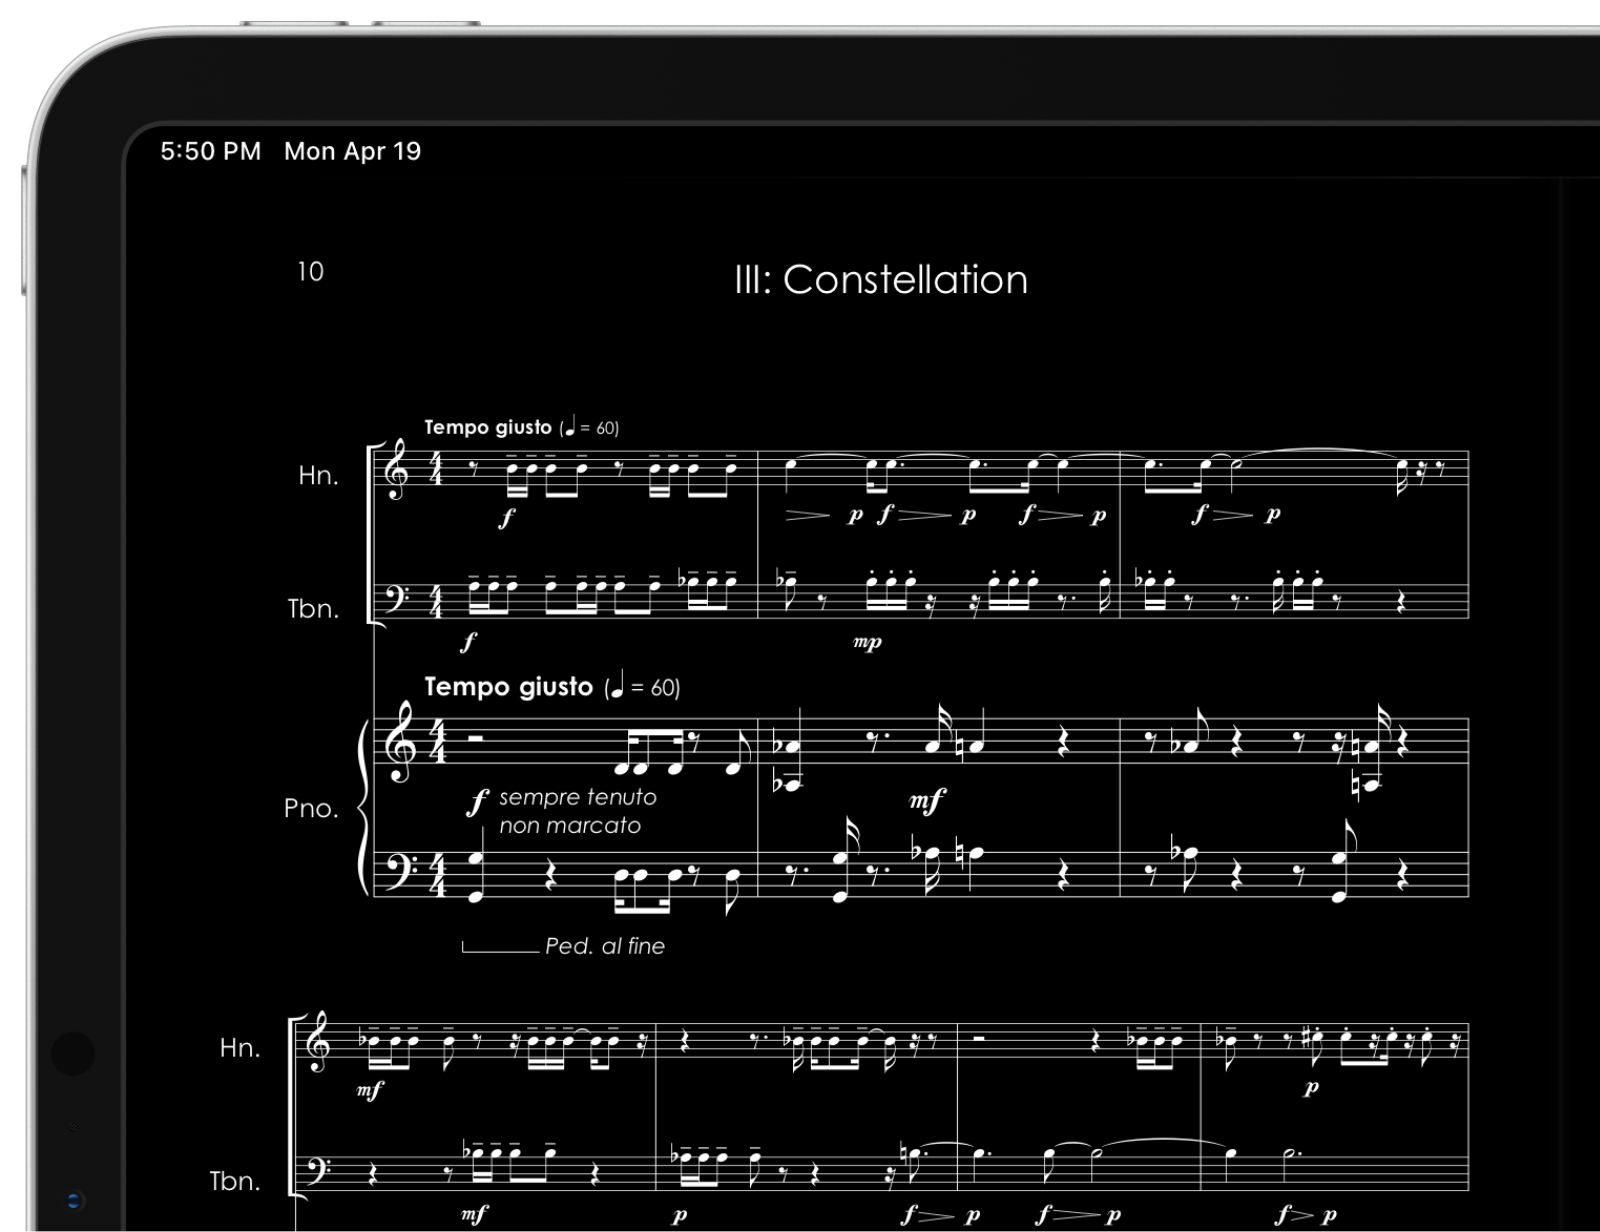 A score with inverted colors